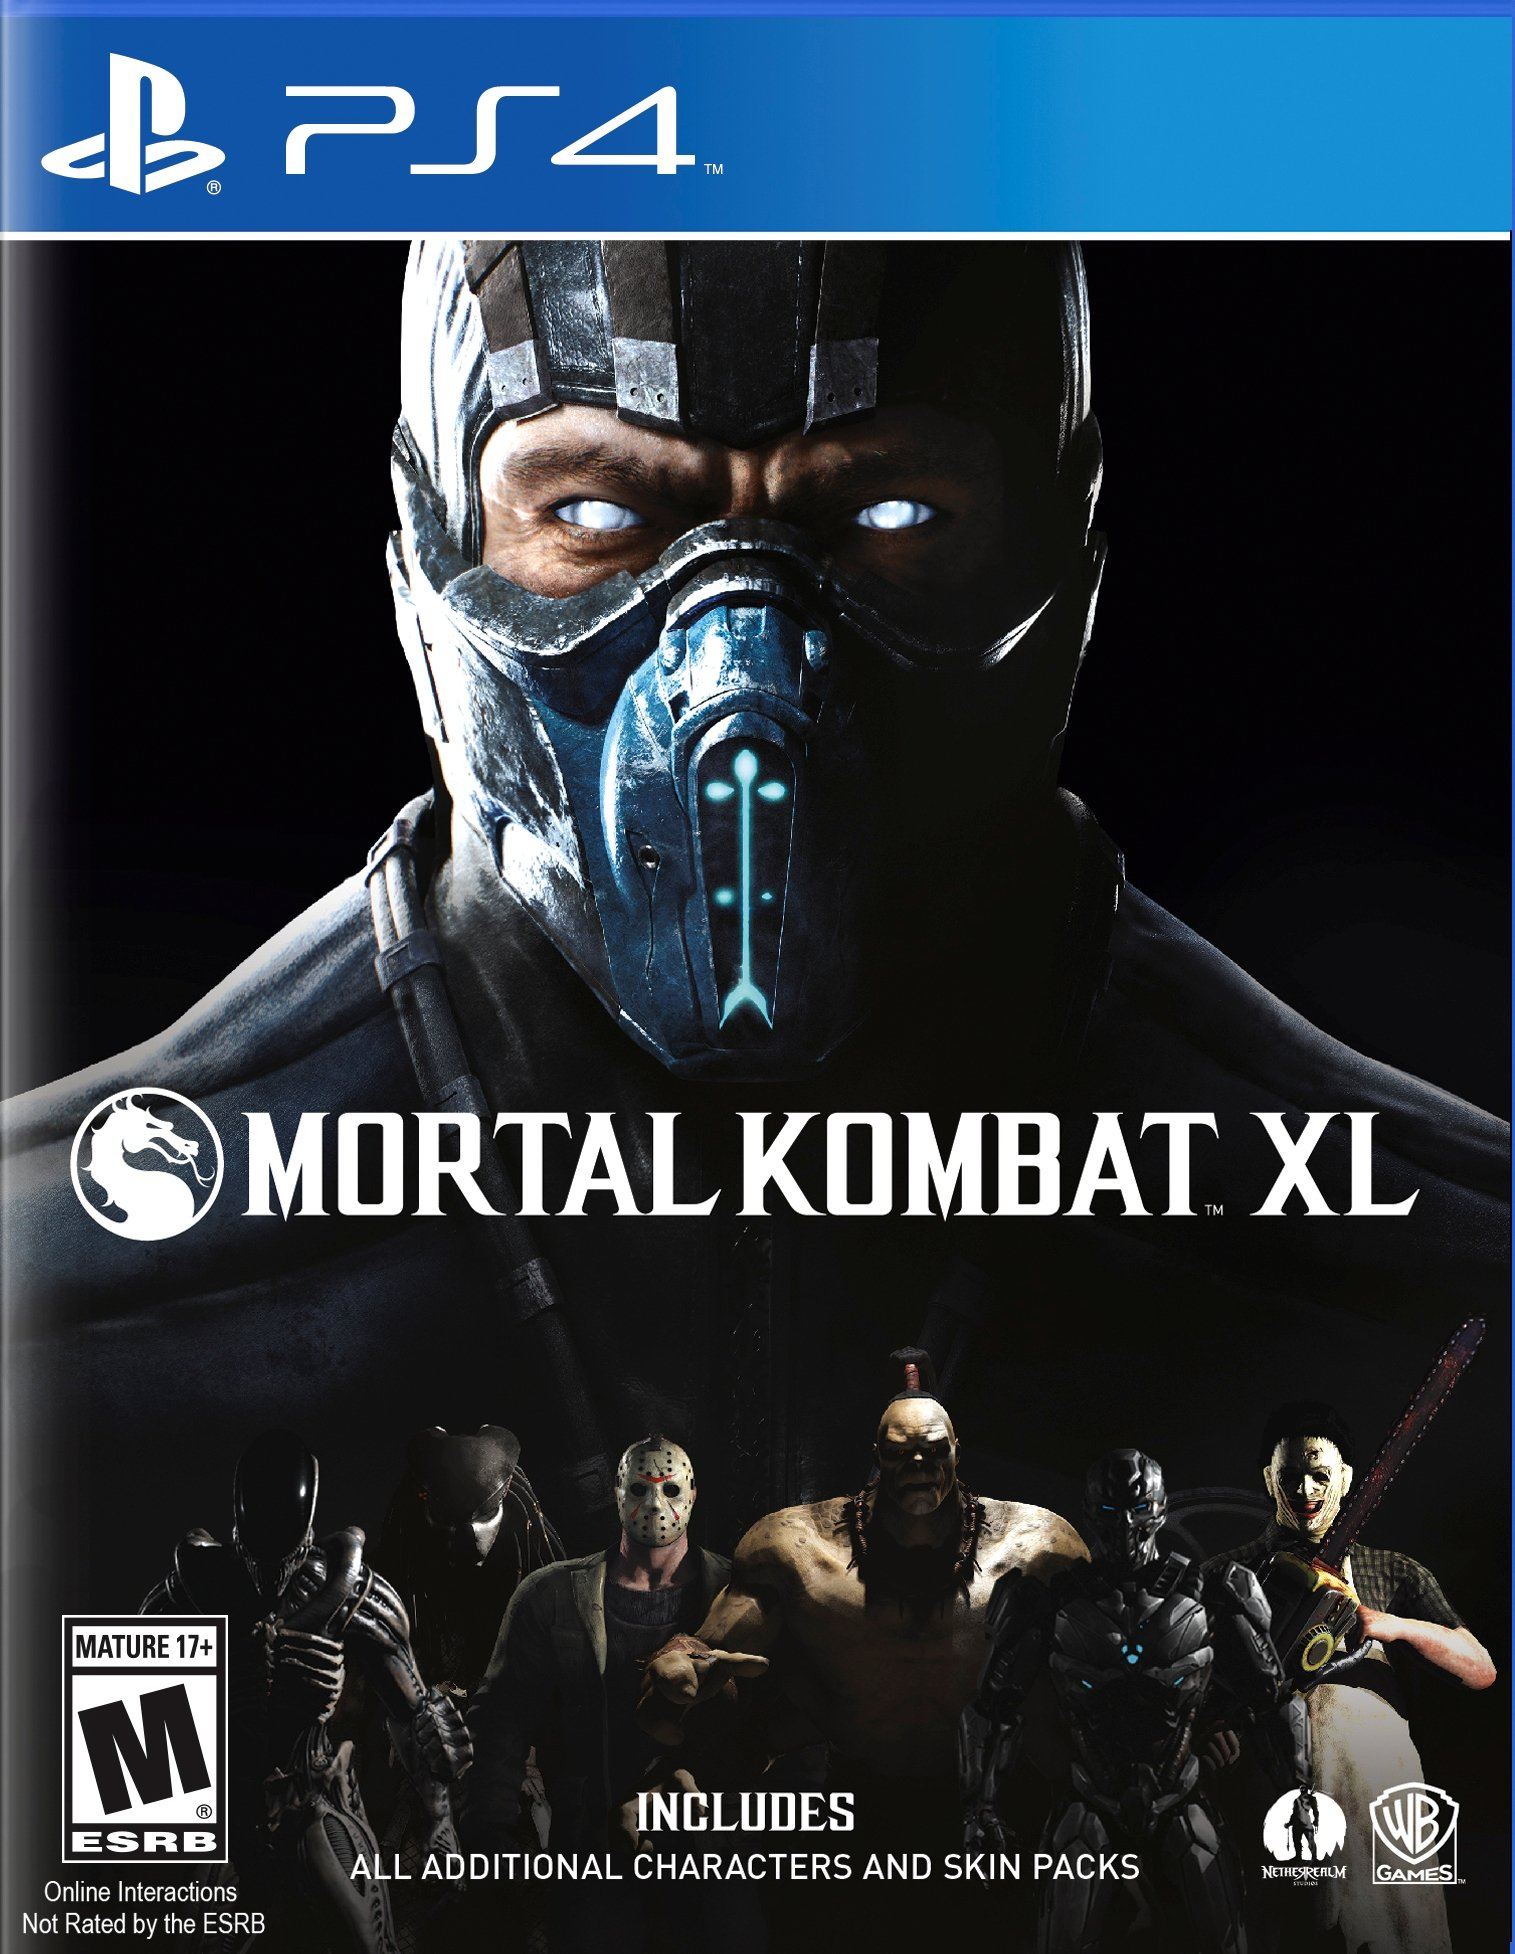 Mortal kombat x release date ps4 in Melbourne